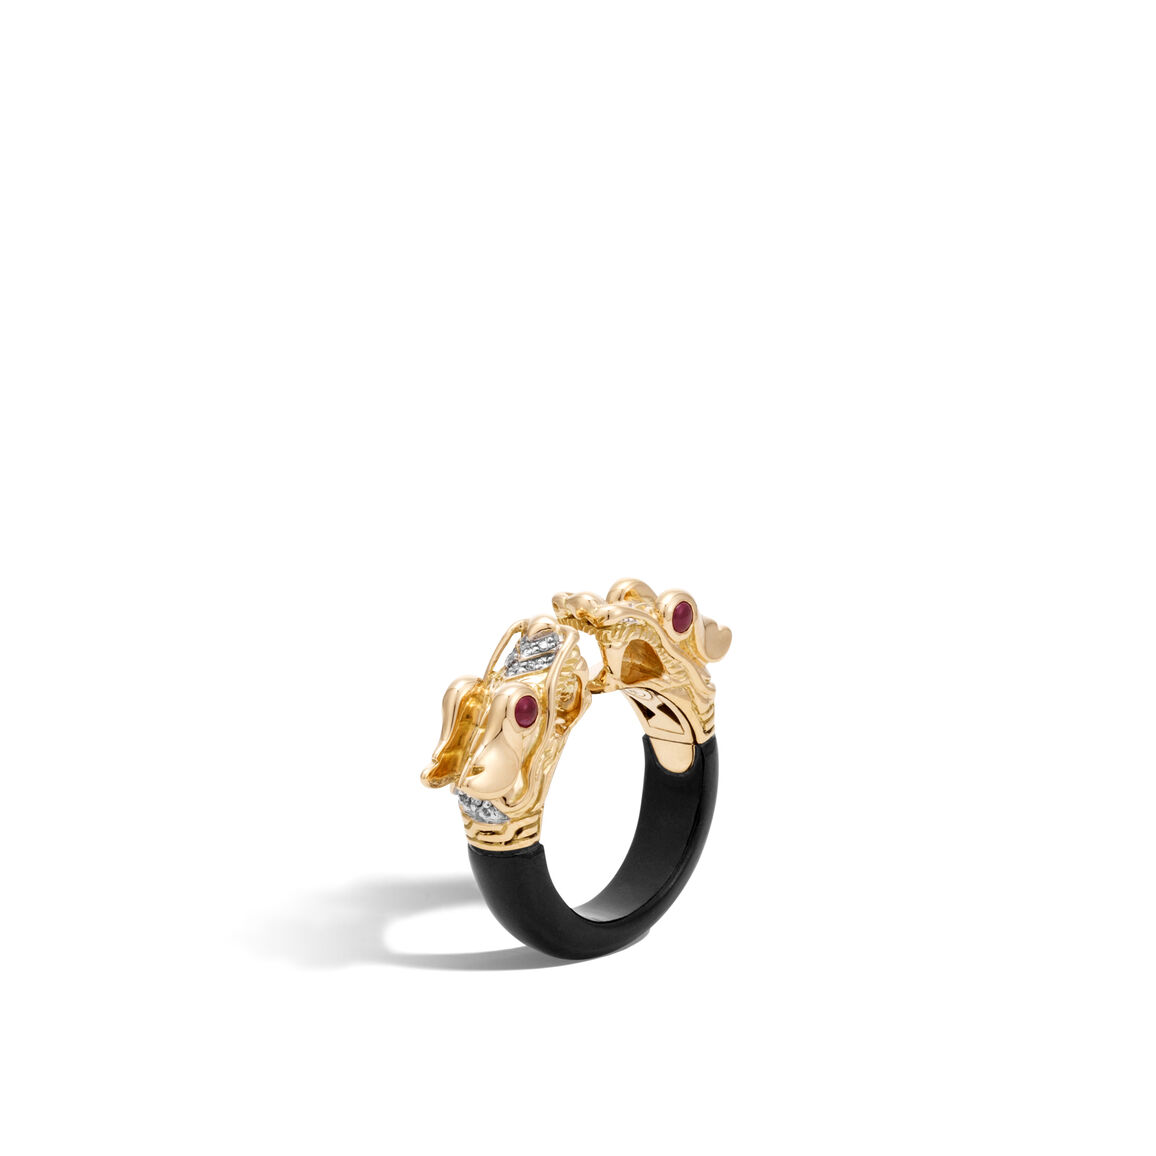 Legends Naga Ring in 18K Gold with Gemstone and Diamonds